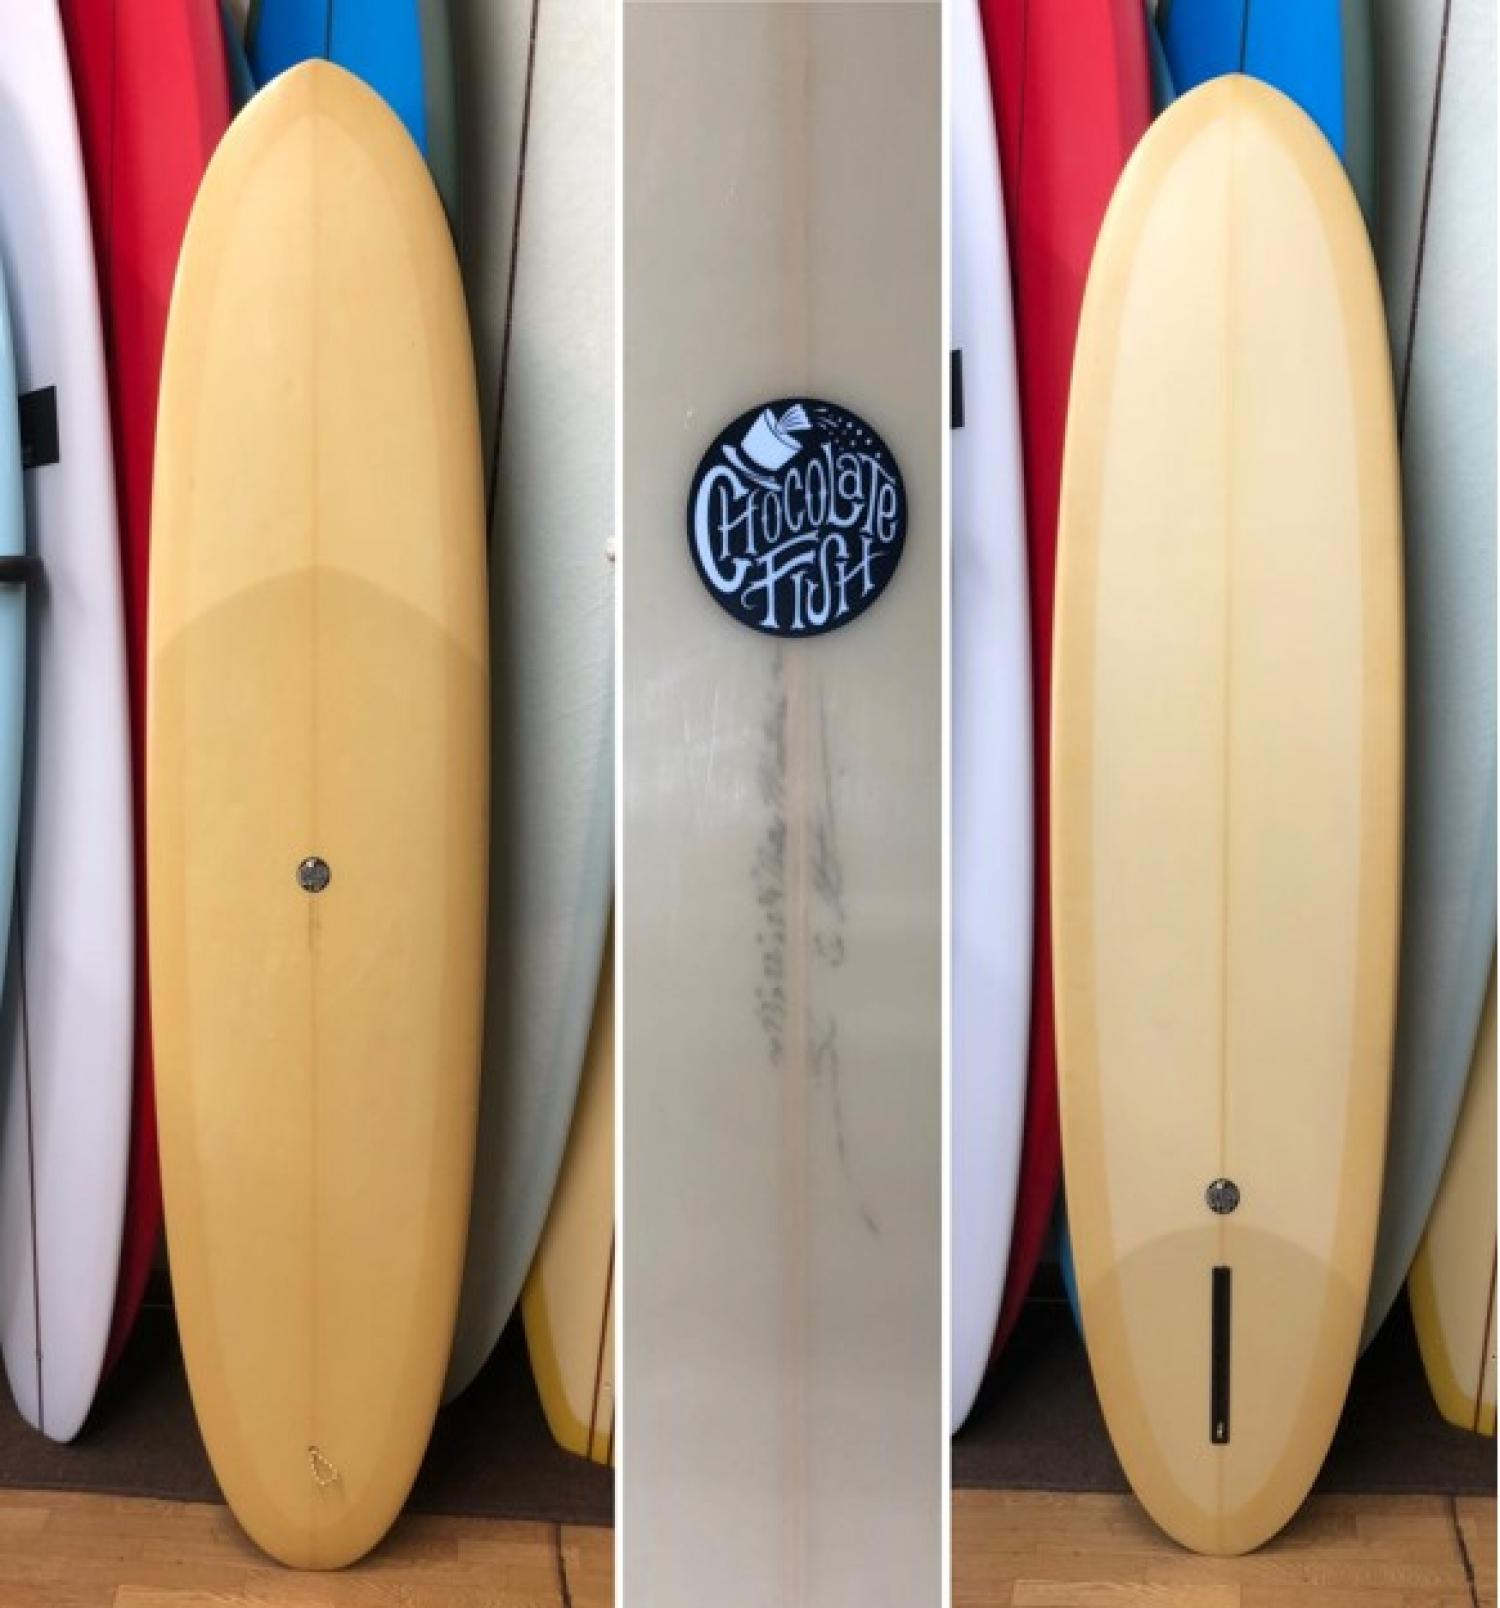 USED BOARDS (Chocolate Fish Surfboards Dirty Martini 7.0)